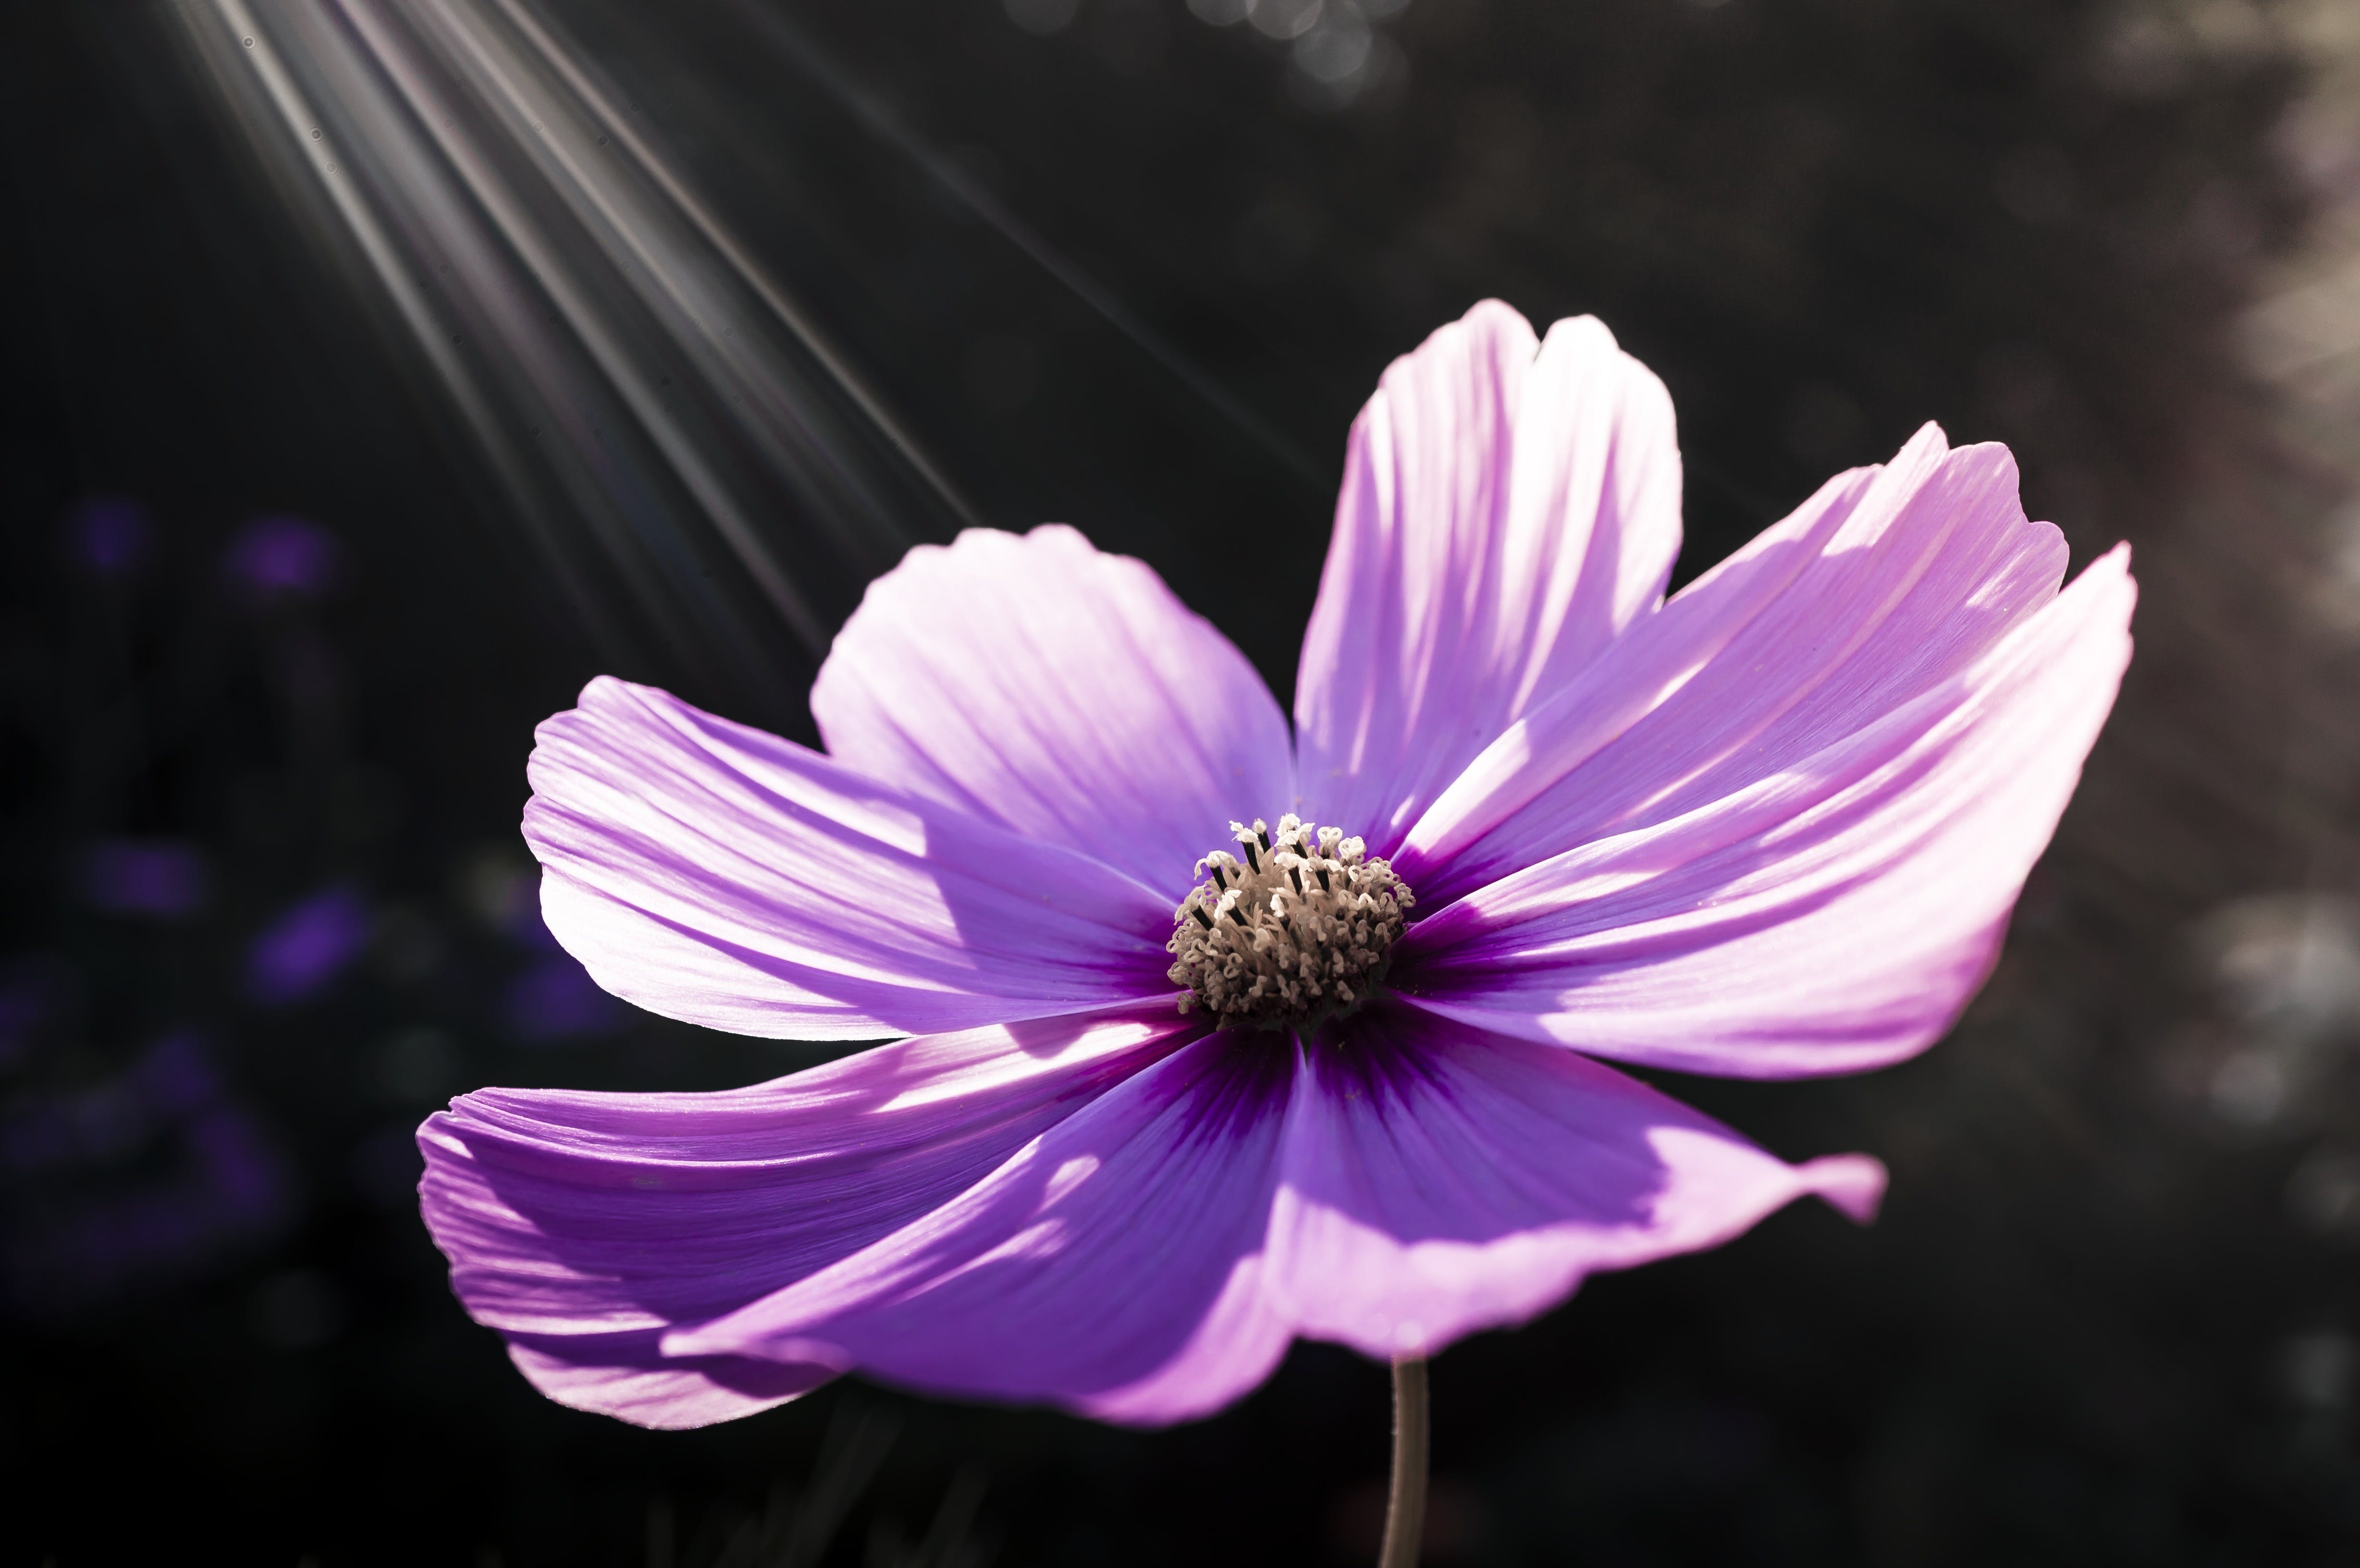 Purple Flower during Daytime